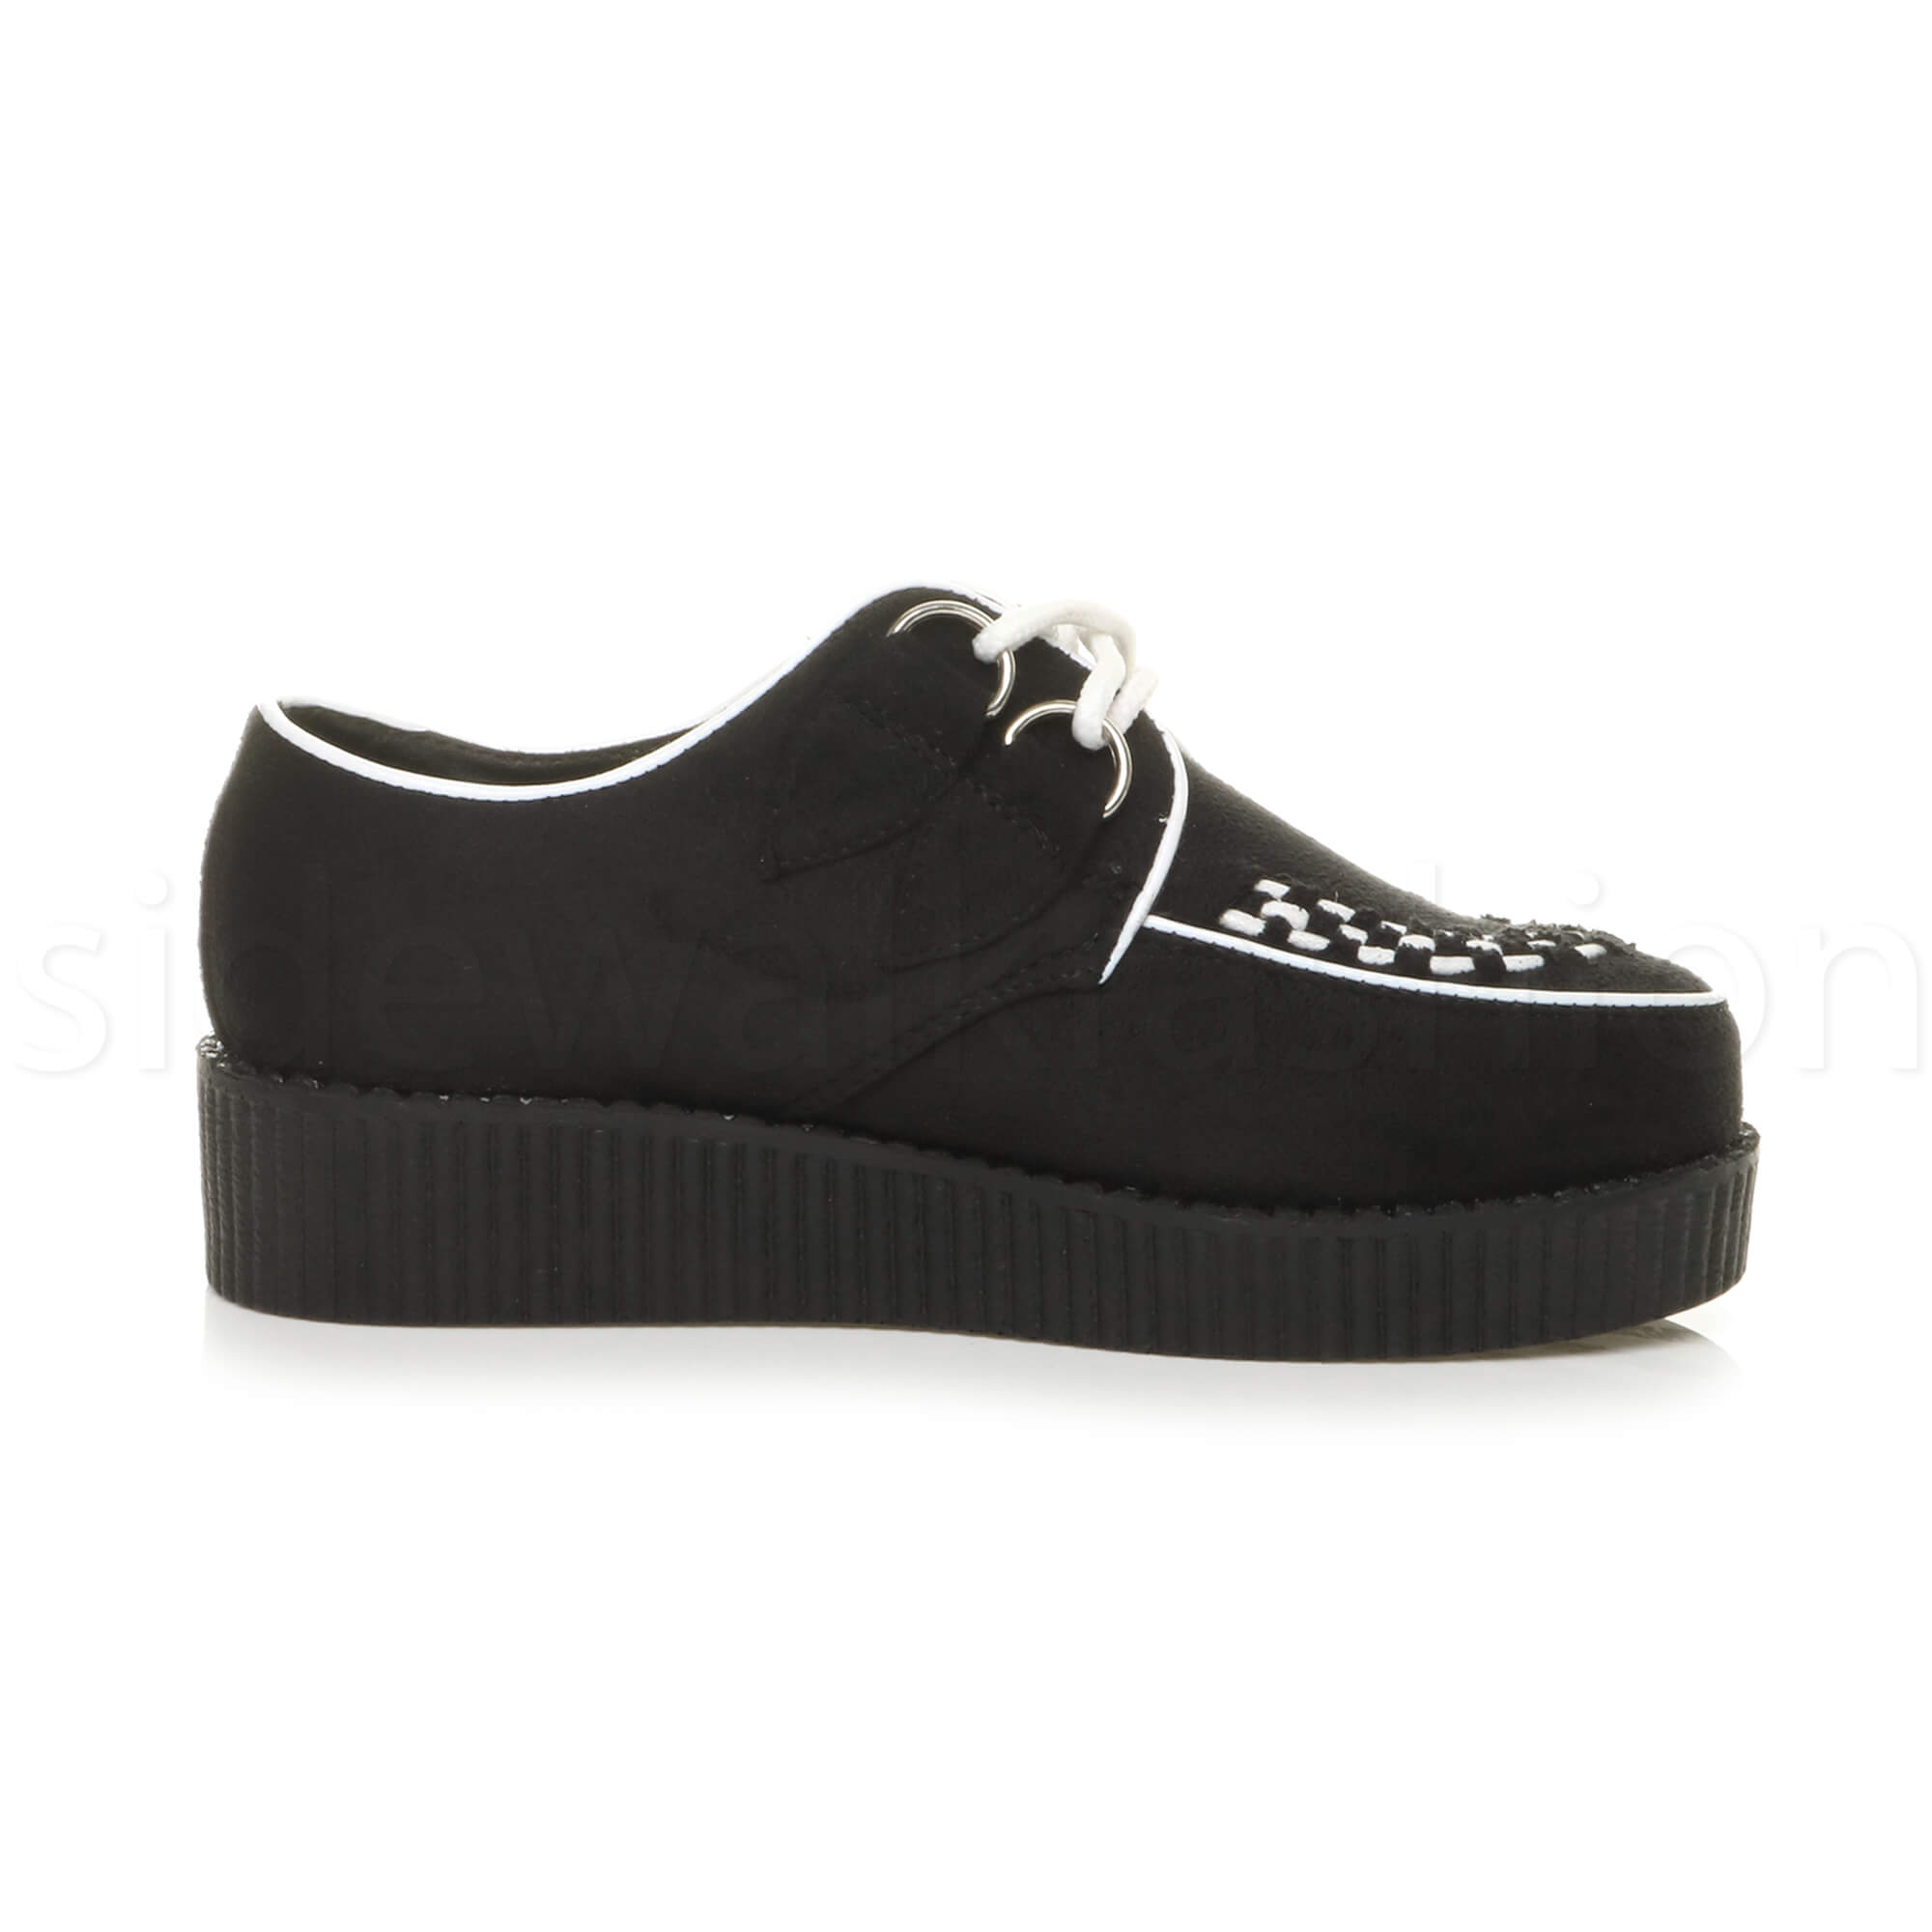 Womens-ladies-flat-platform-wedge-lace-up-goth-punk-creepers-shoes-boots-size miniatura 25